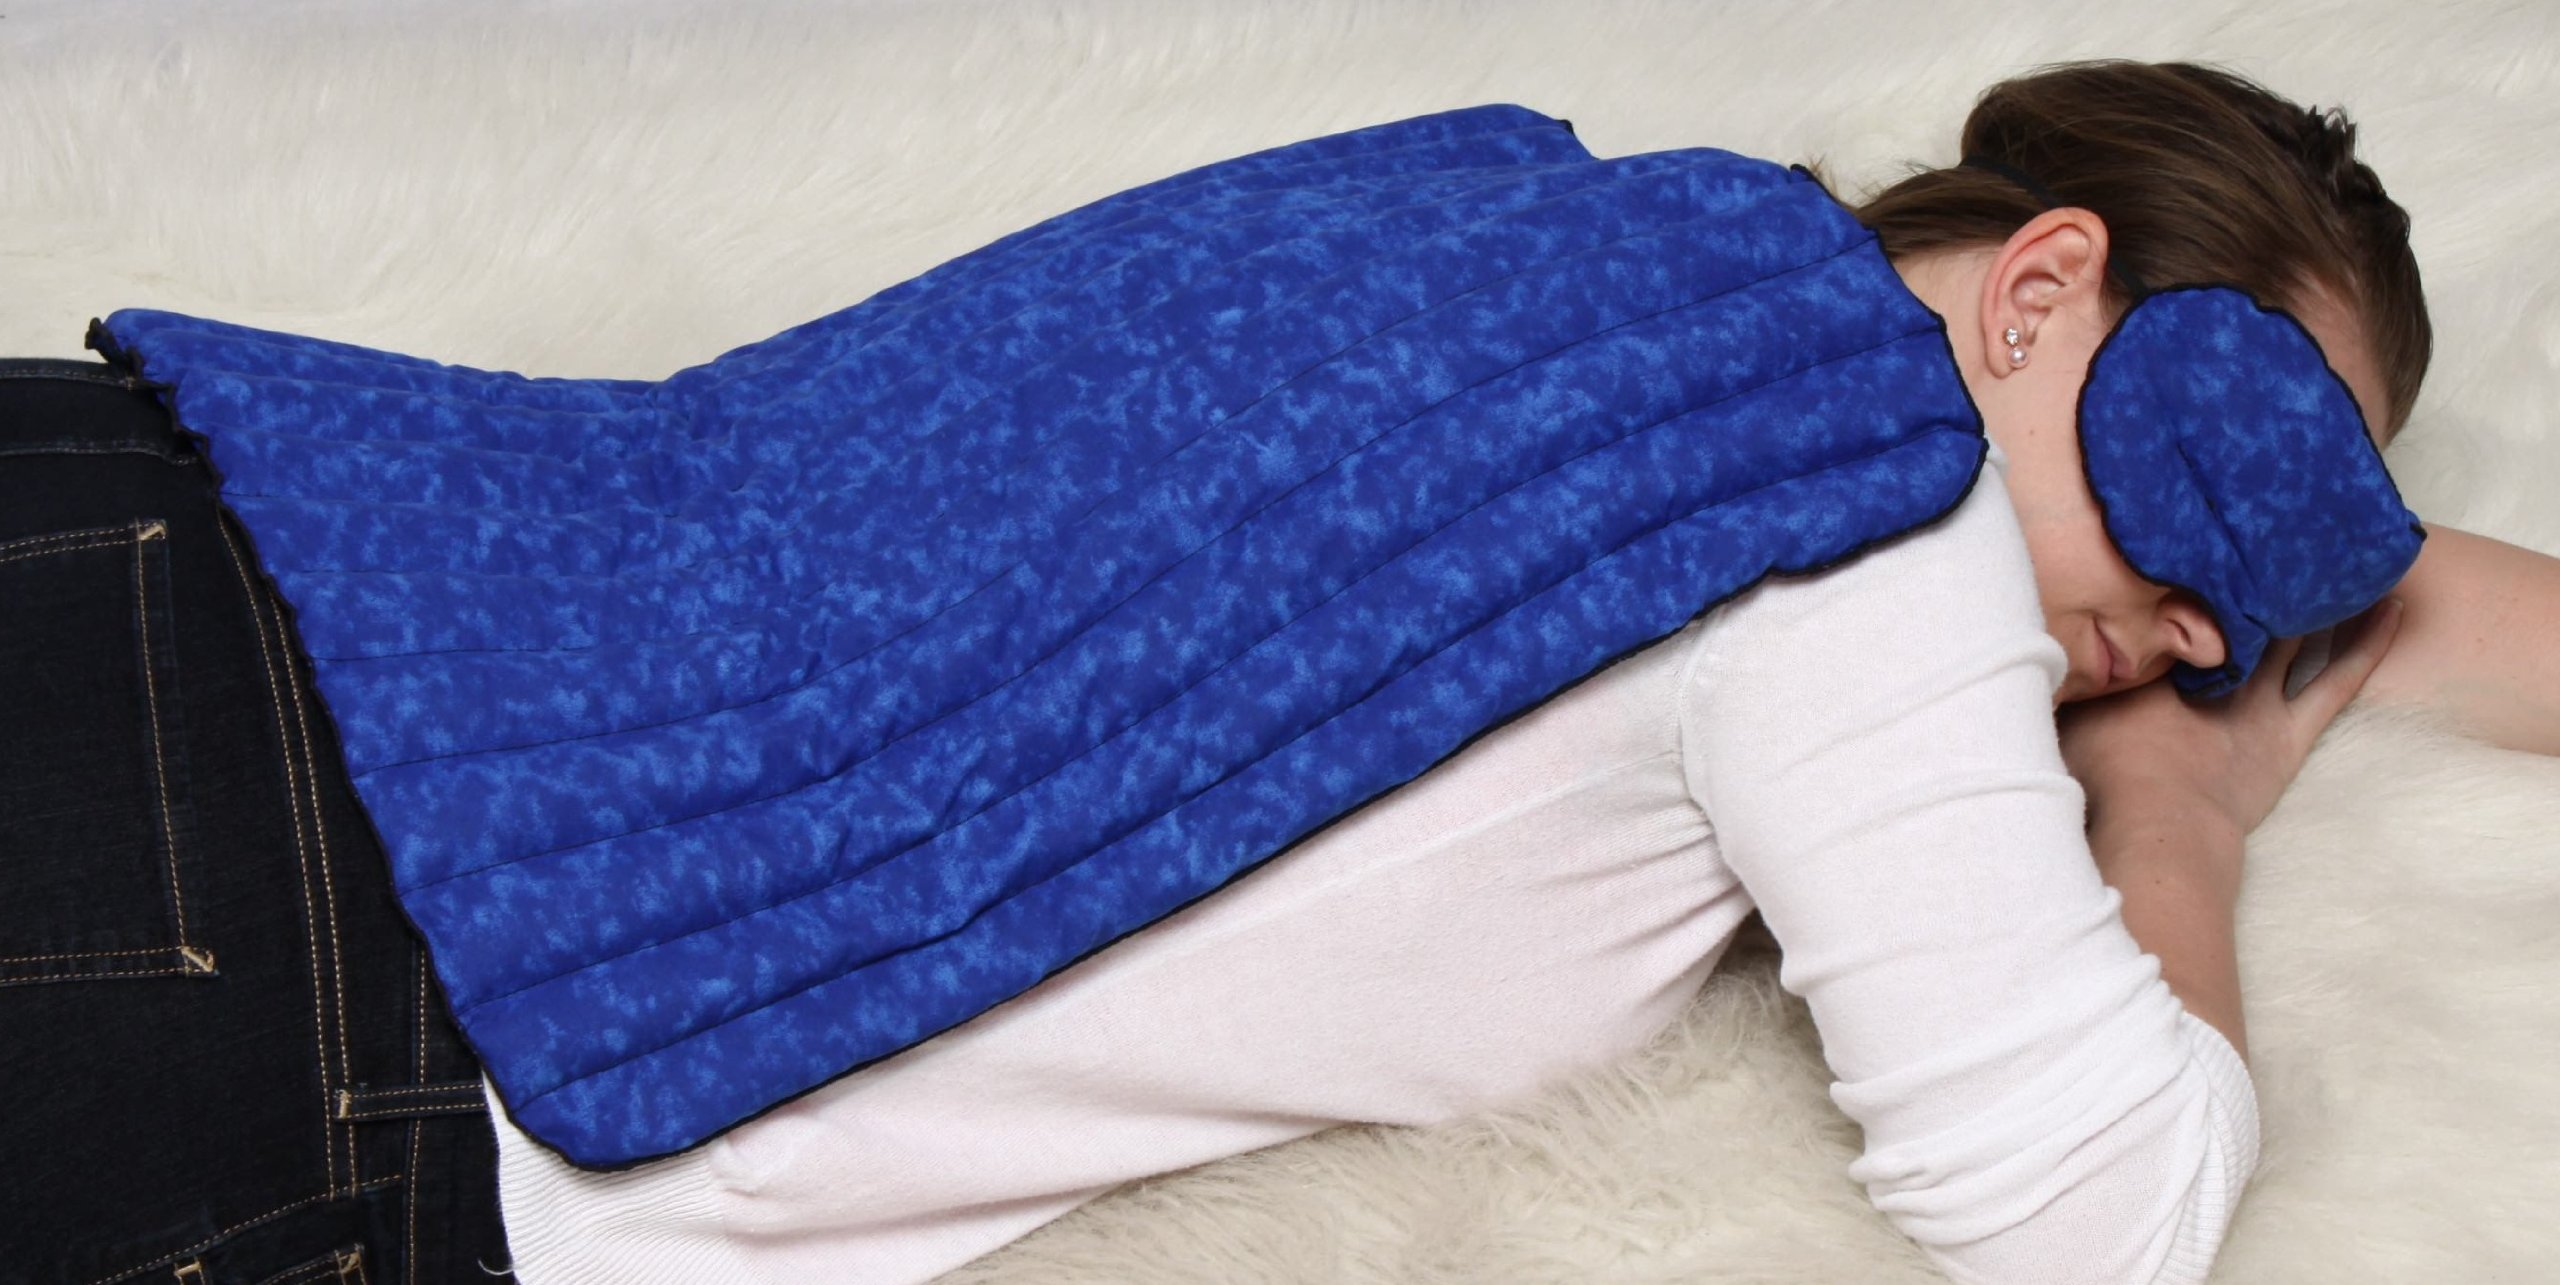 Blue Hot/cold Extra Large Non-Scented Kozy Microwavable Heating Pad